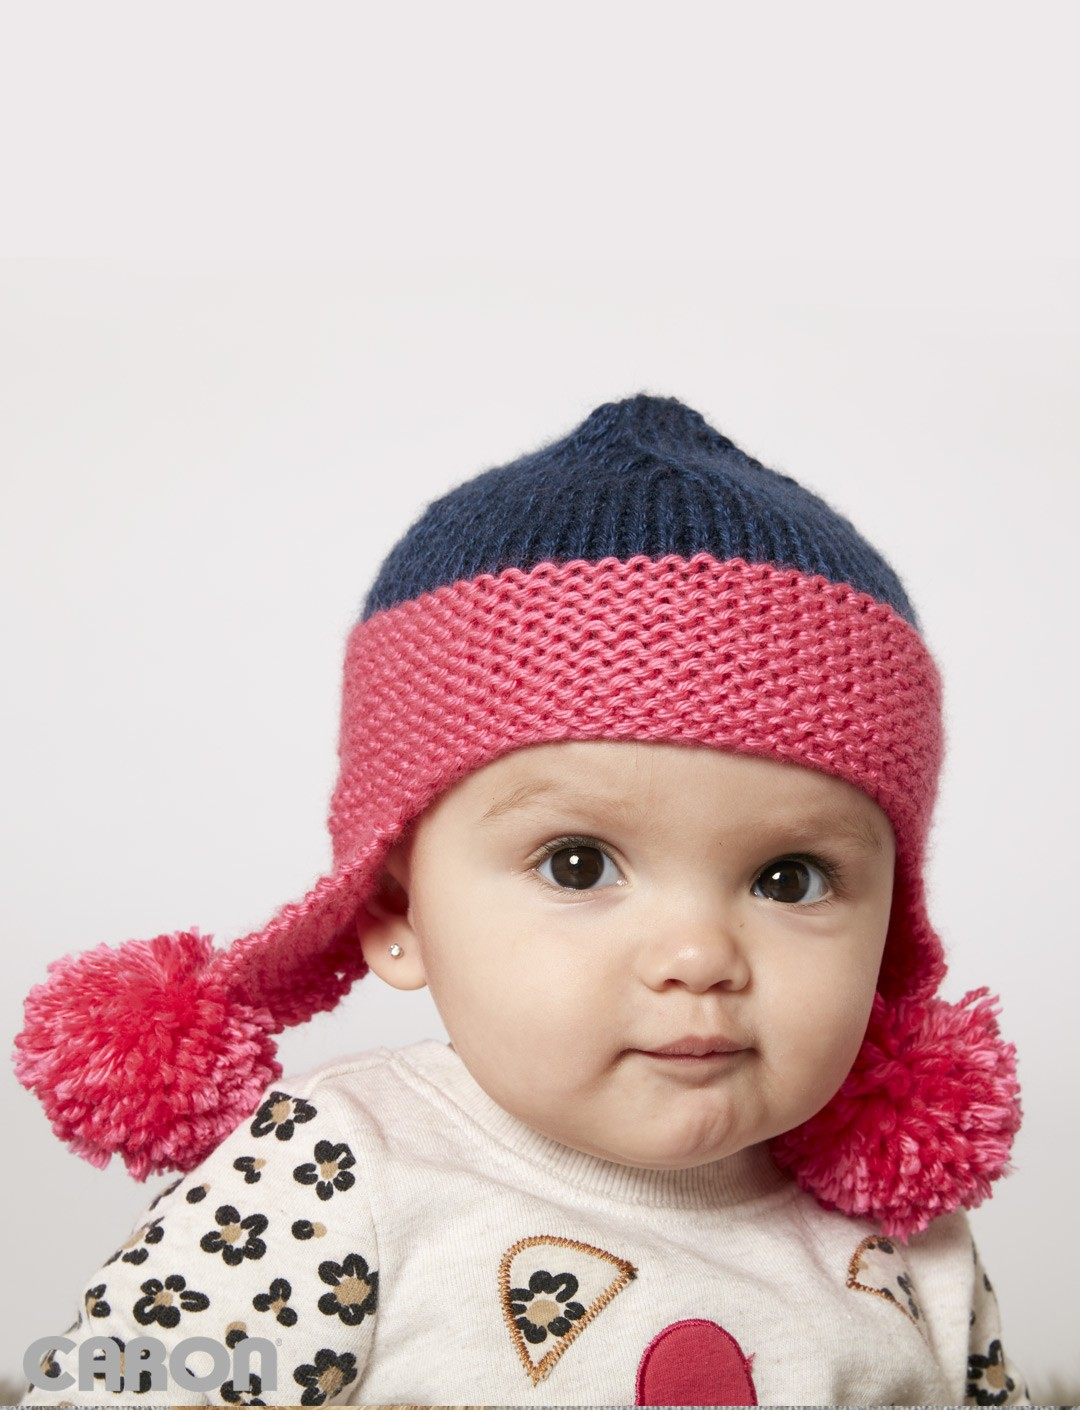 Free Knitting Patterns For Toddler Earflap Hats : Caron Baby Earflap Hat, Knit Pattern Yarnspirations